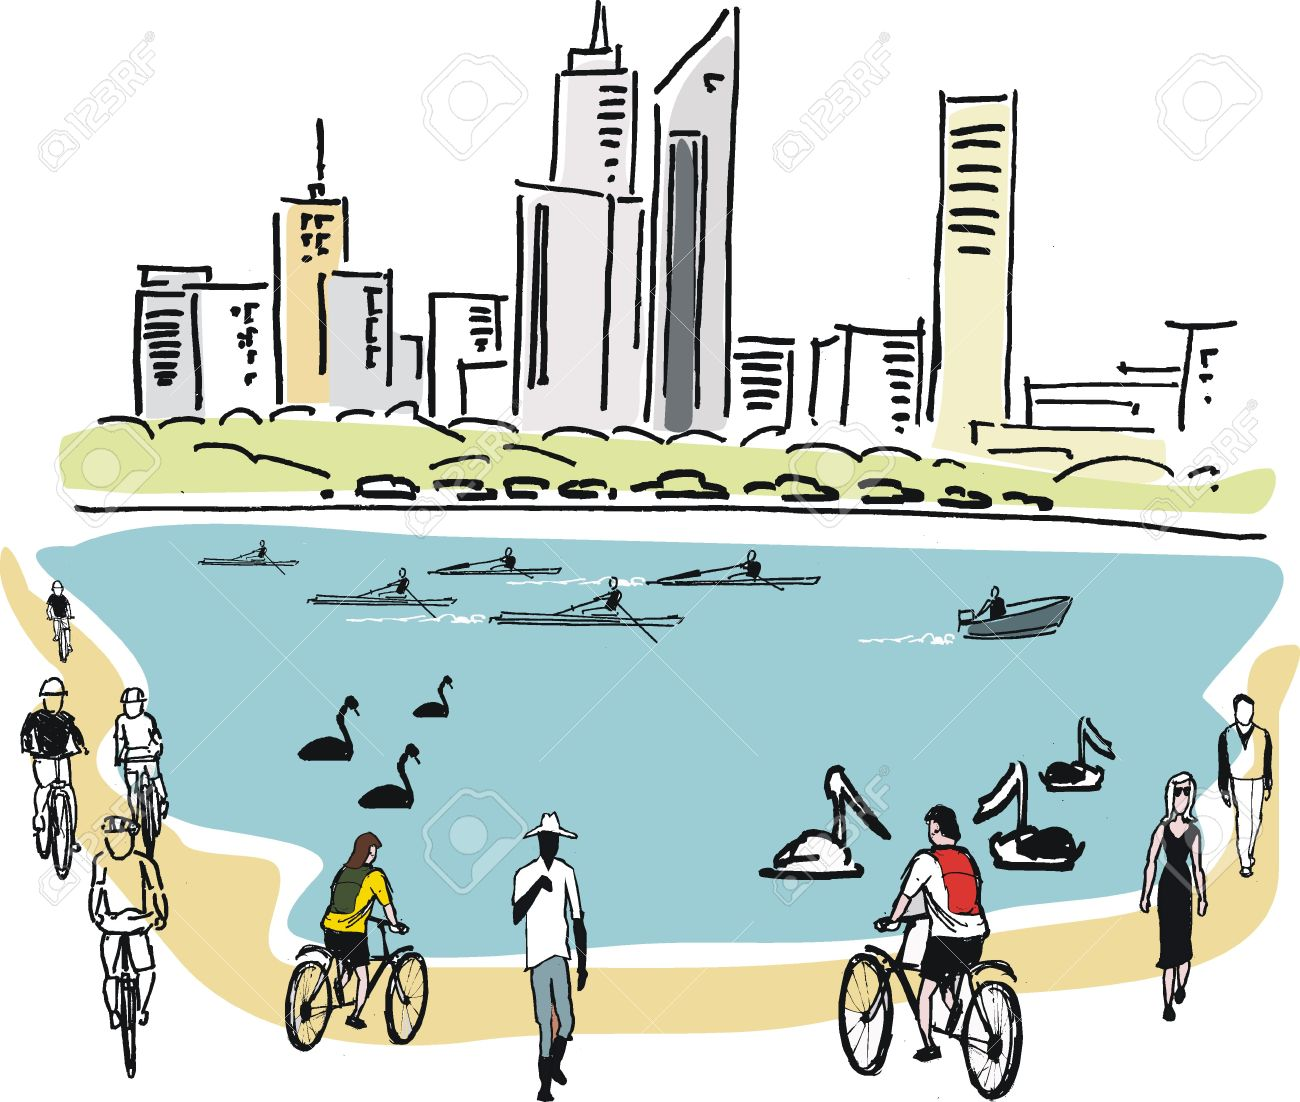 Perth clipart #17, Download drawings